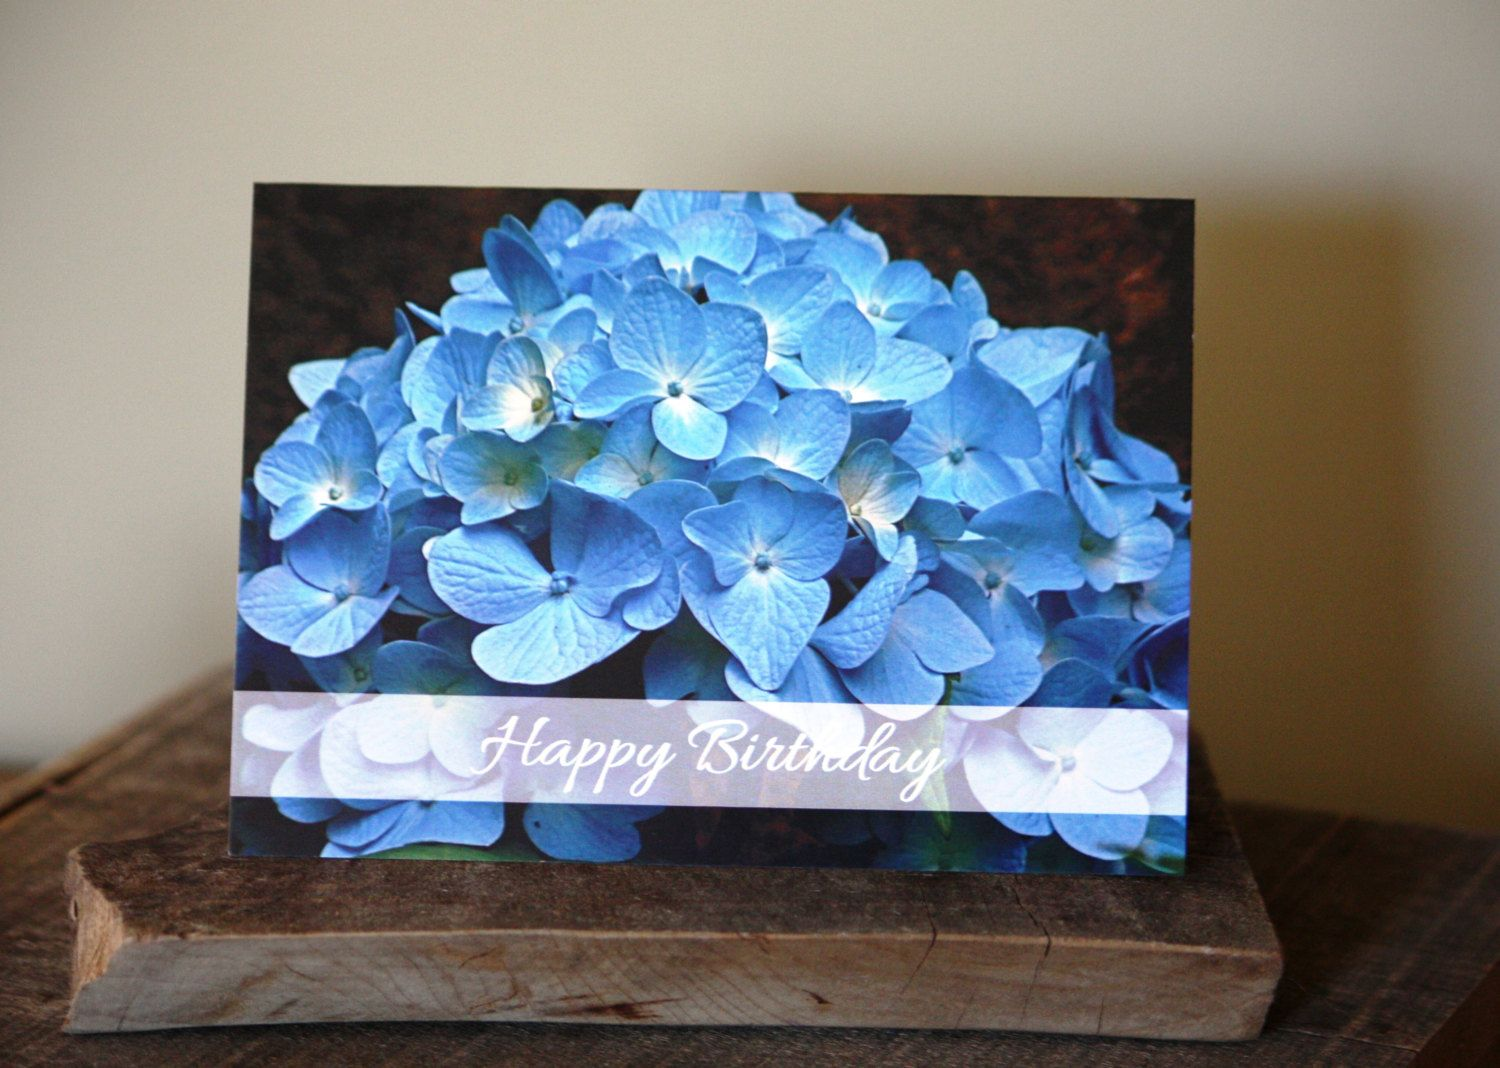 Blue hydrangea happy birthday blank card pack of 4 hydrangea blue hydrangea happy birthday blank card pack of 4 kristyandbryce Image collections